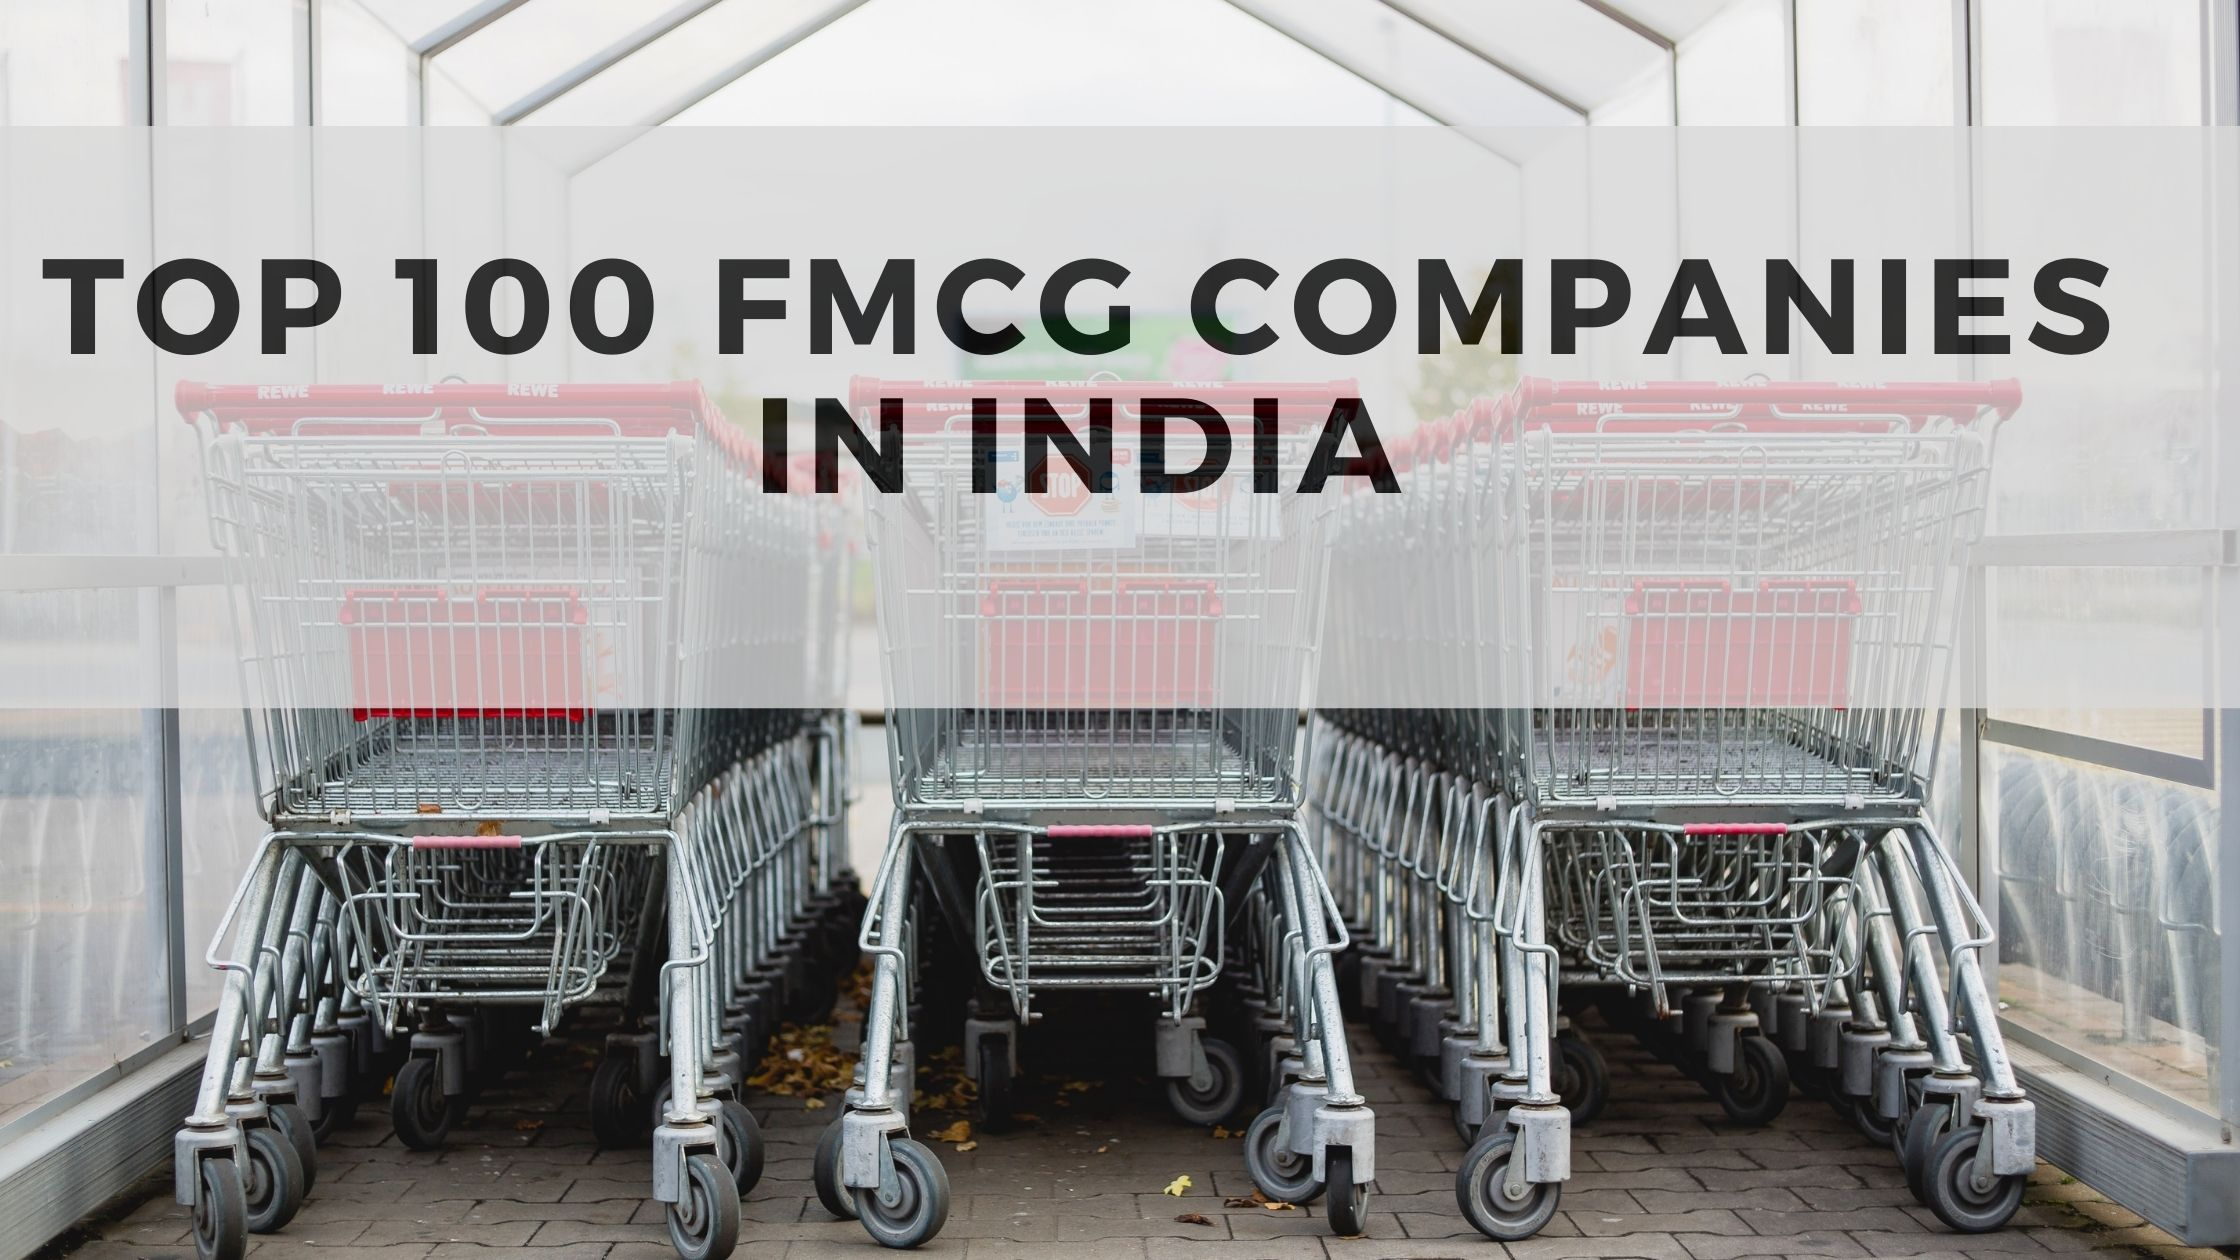 Top 100 Consumer Goods - FMCG Companies in India